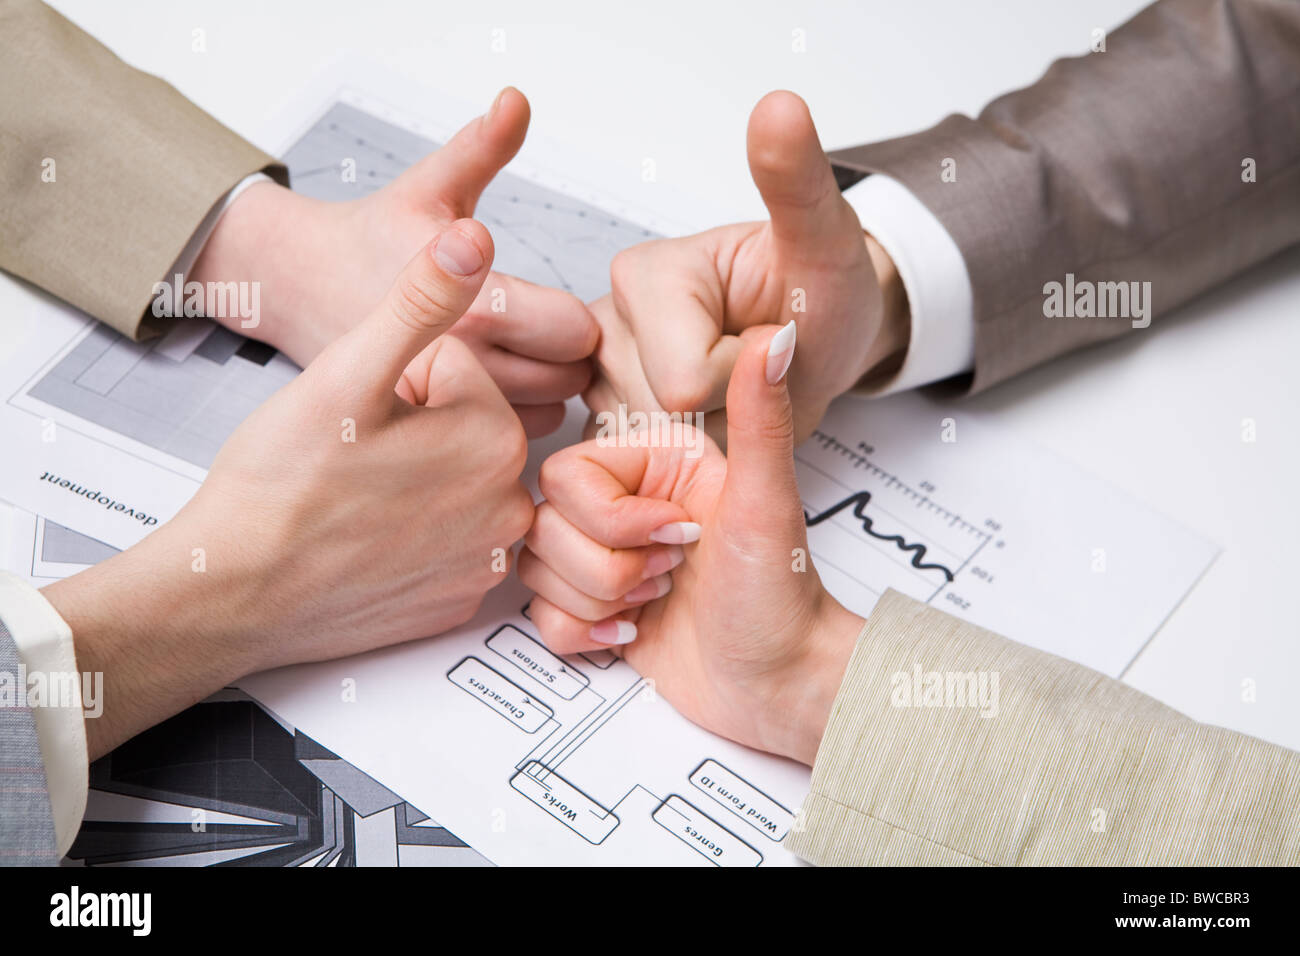 Image of human hands with their thumbs up symbolizing success in work Stock Photo